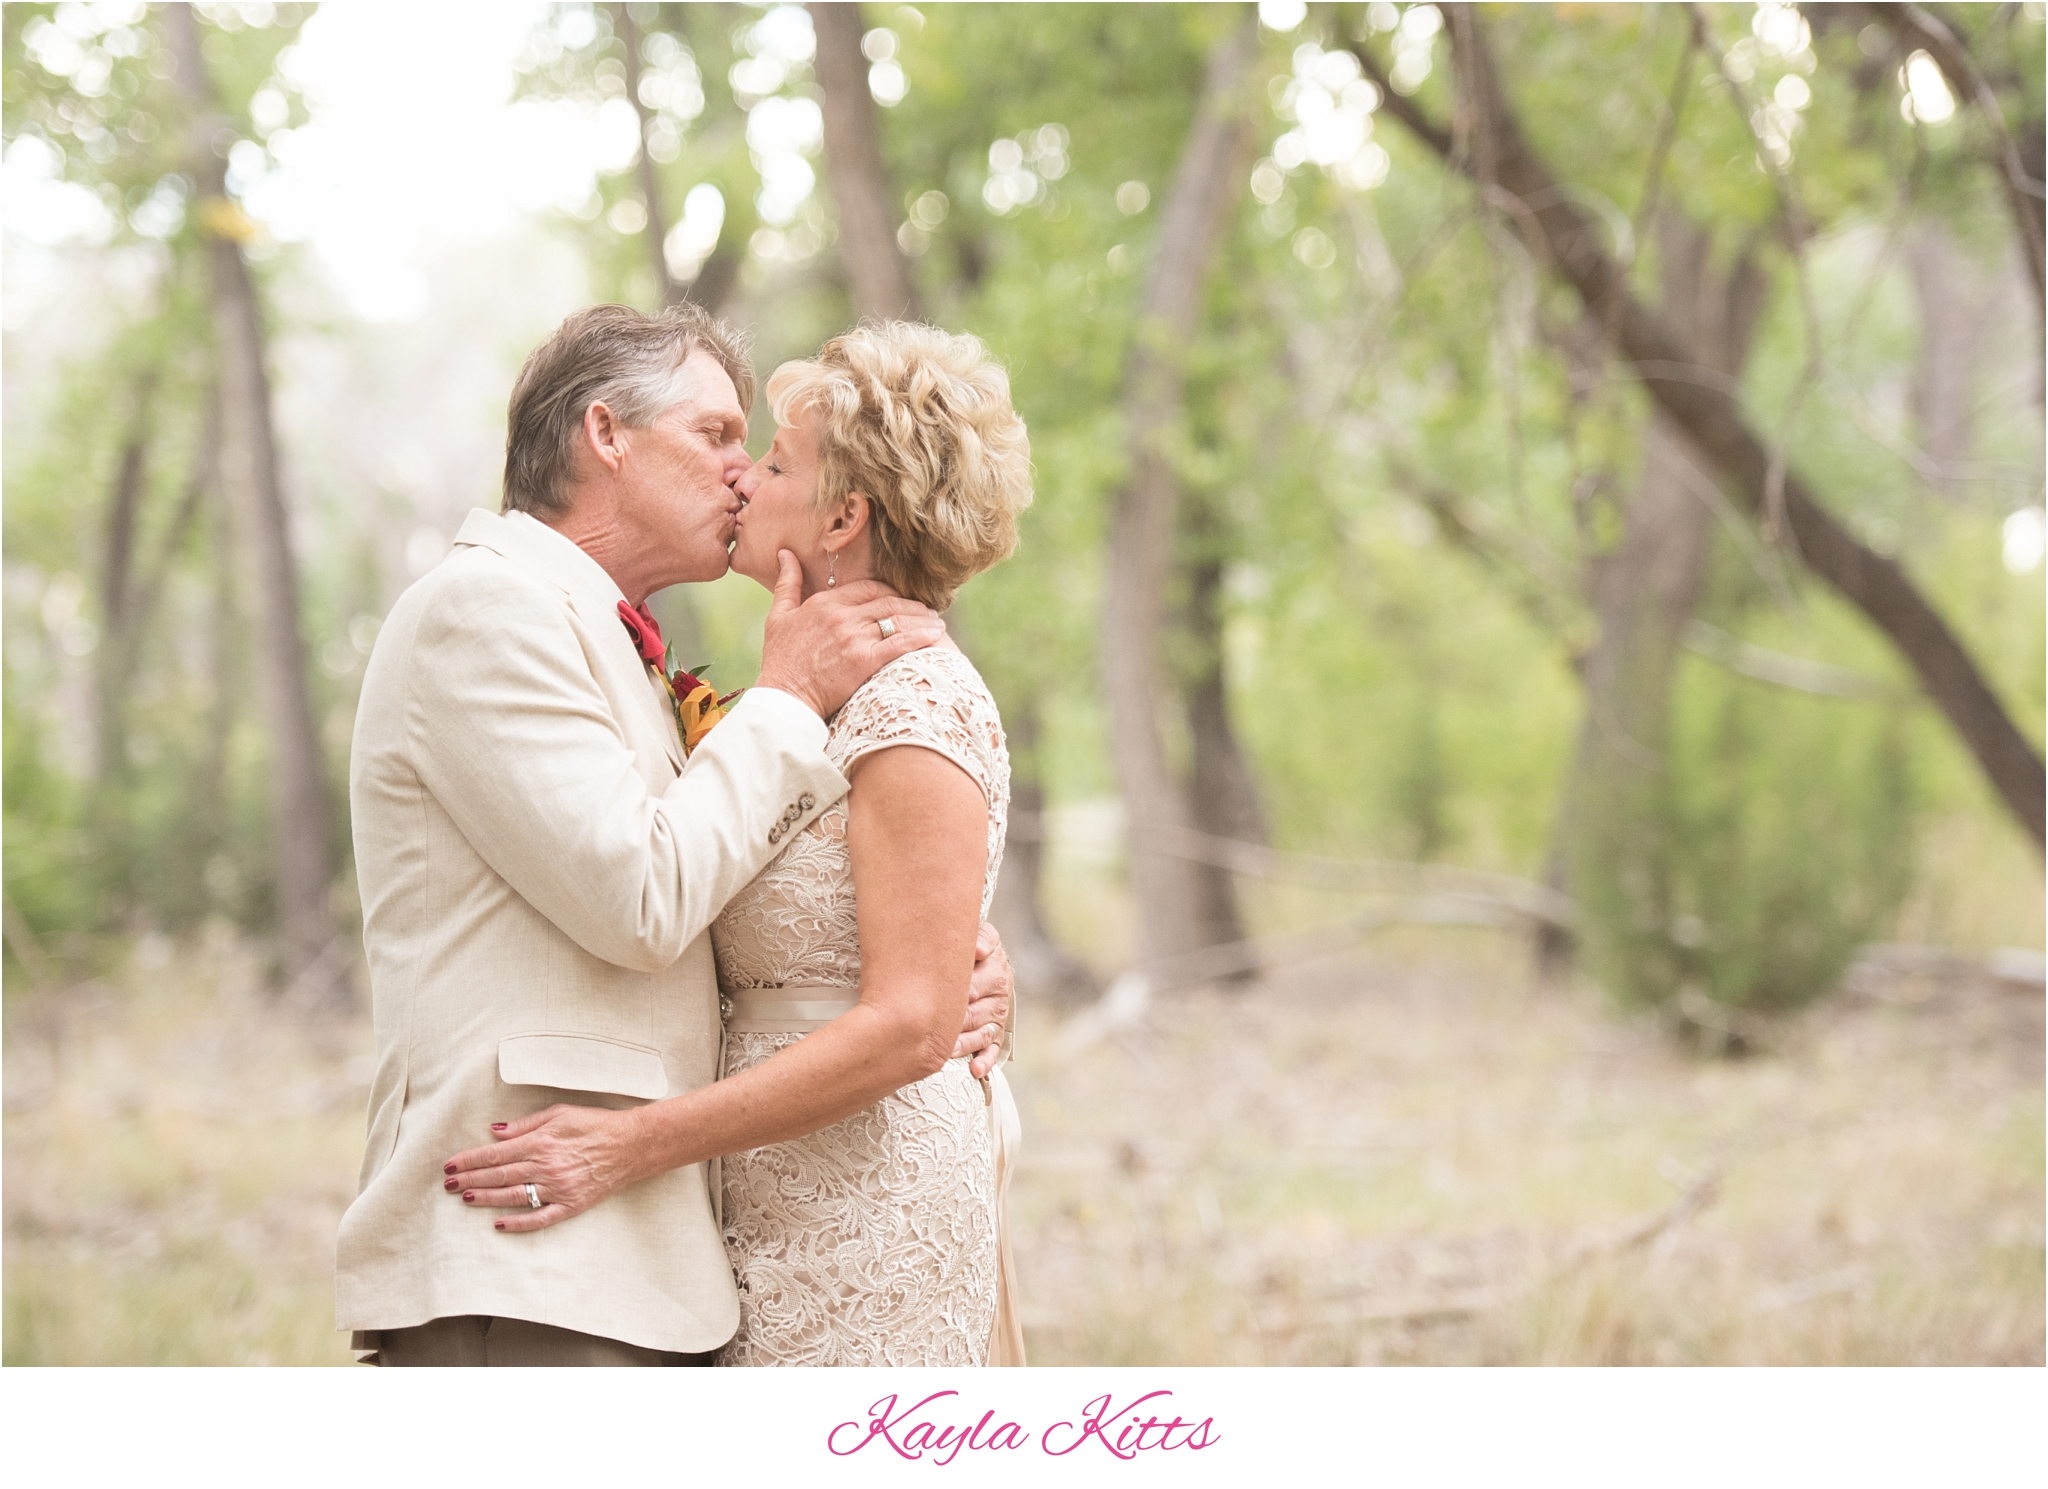 kayla kitts photography - albuquerque wedding photographer - albuquerque wedding photography - albuquerque venue - hyatt tamaya - hyatt tamaya wedding - new mexico wedding photographer_0053.jpg